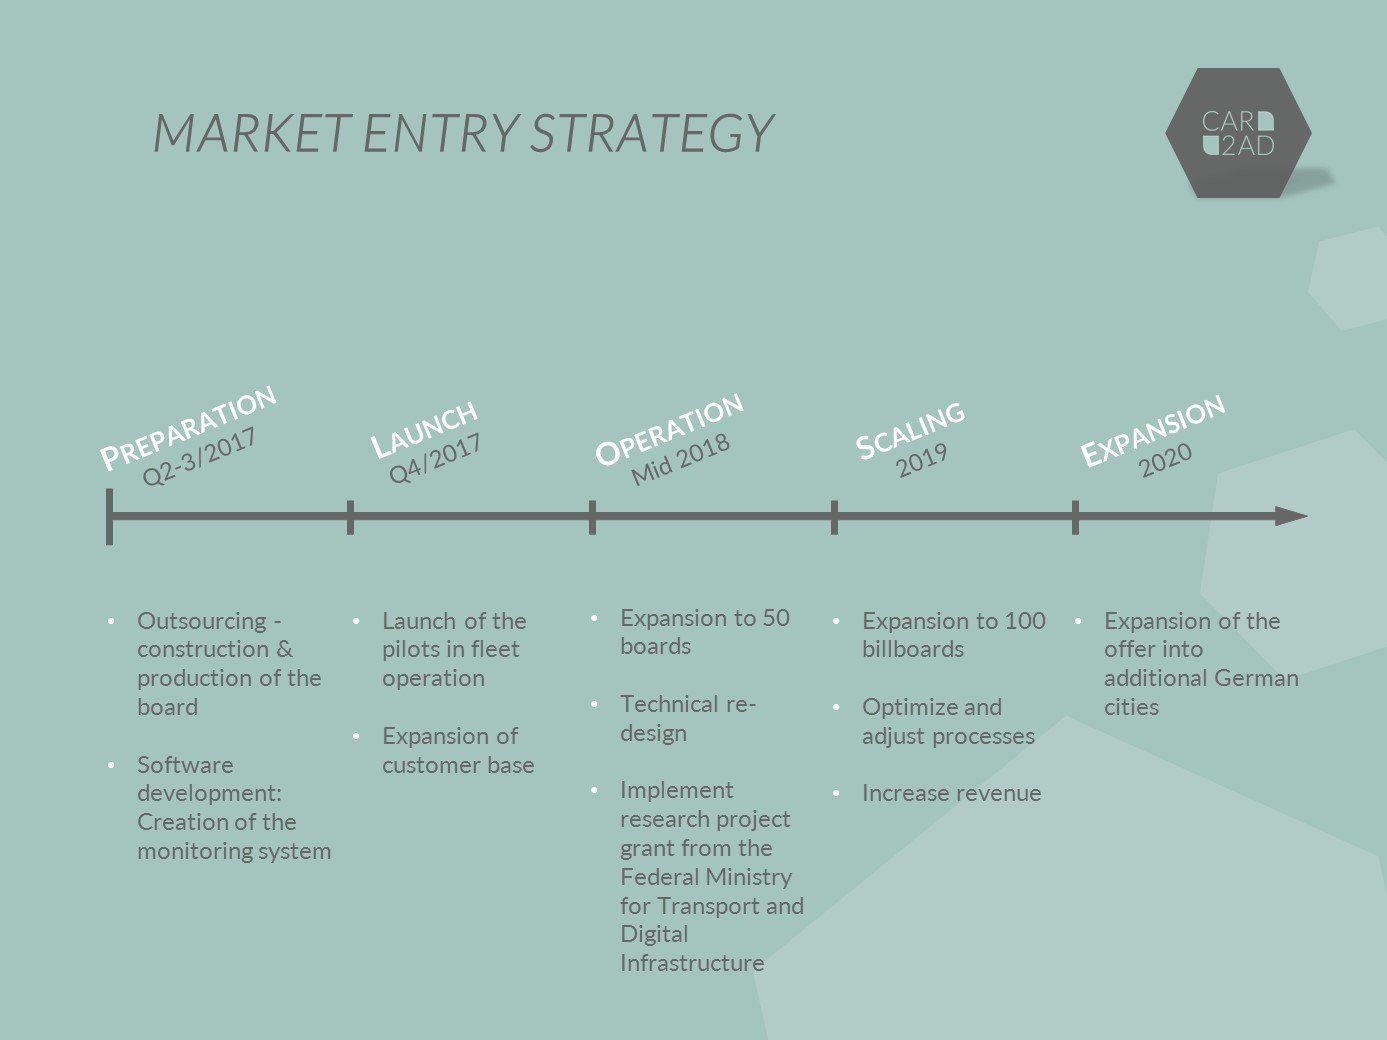 Market Entry Strategy - CAR2AD